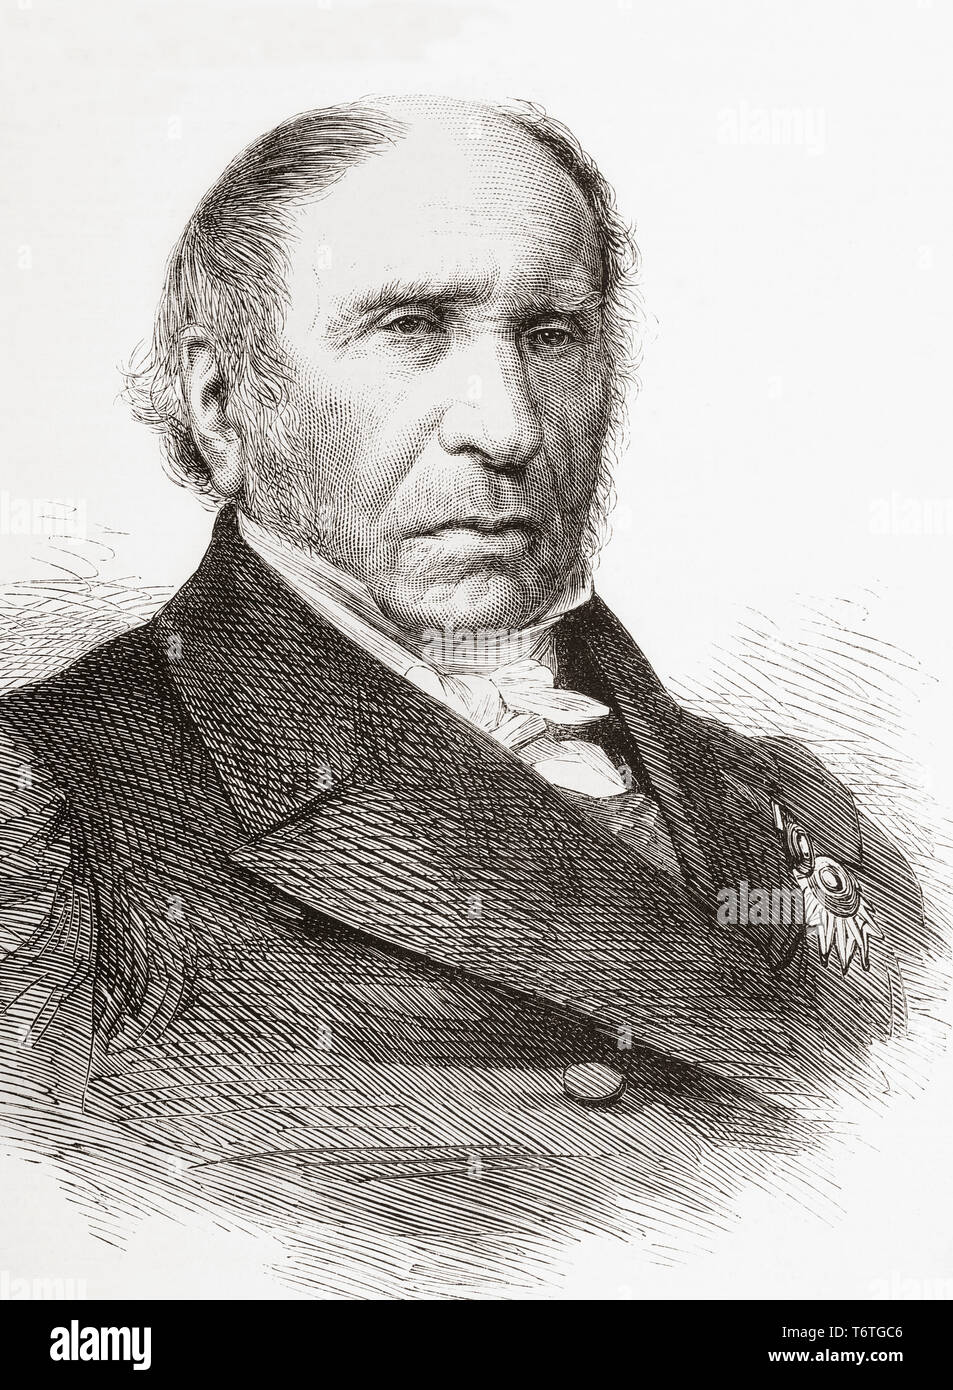 Andre Marie Jean Jacques Dupin, 1783 –1865, aka Dupin the Elder.  French advocate, president of the chamber of deputies and of the Legislative Assembly.  From The Illustrated London News, published 1865. - Stock Image